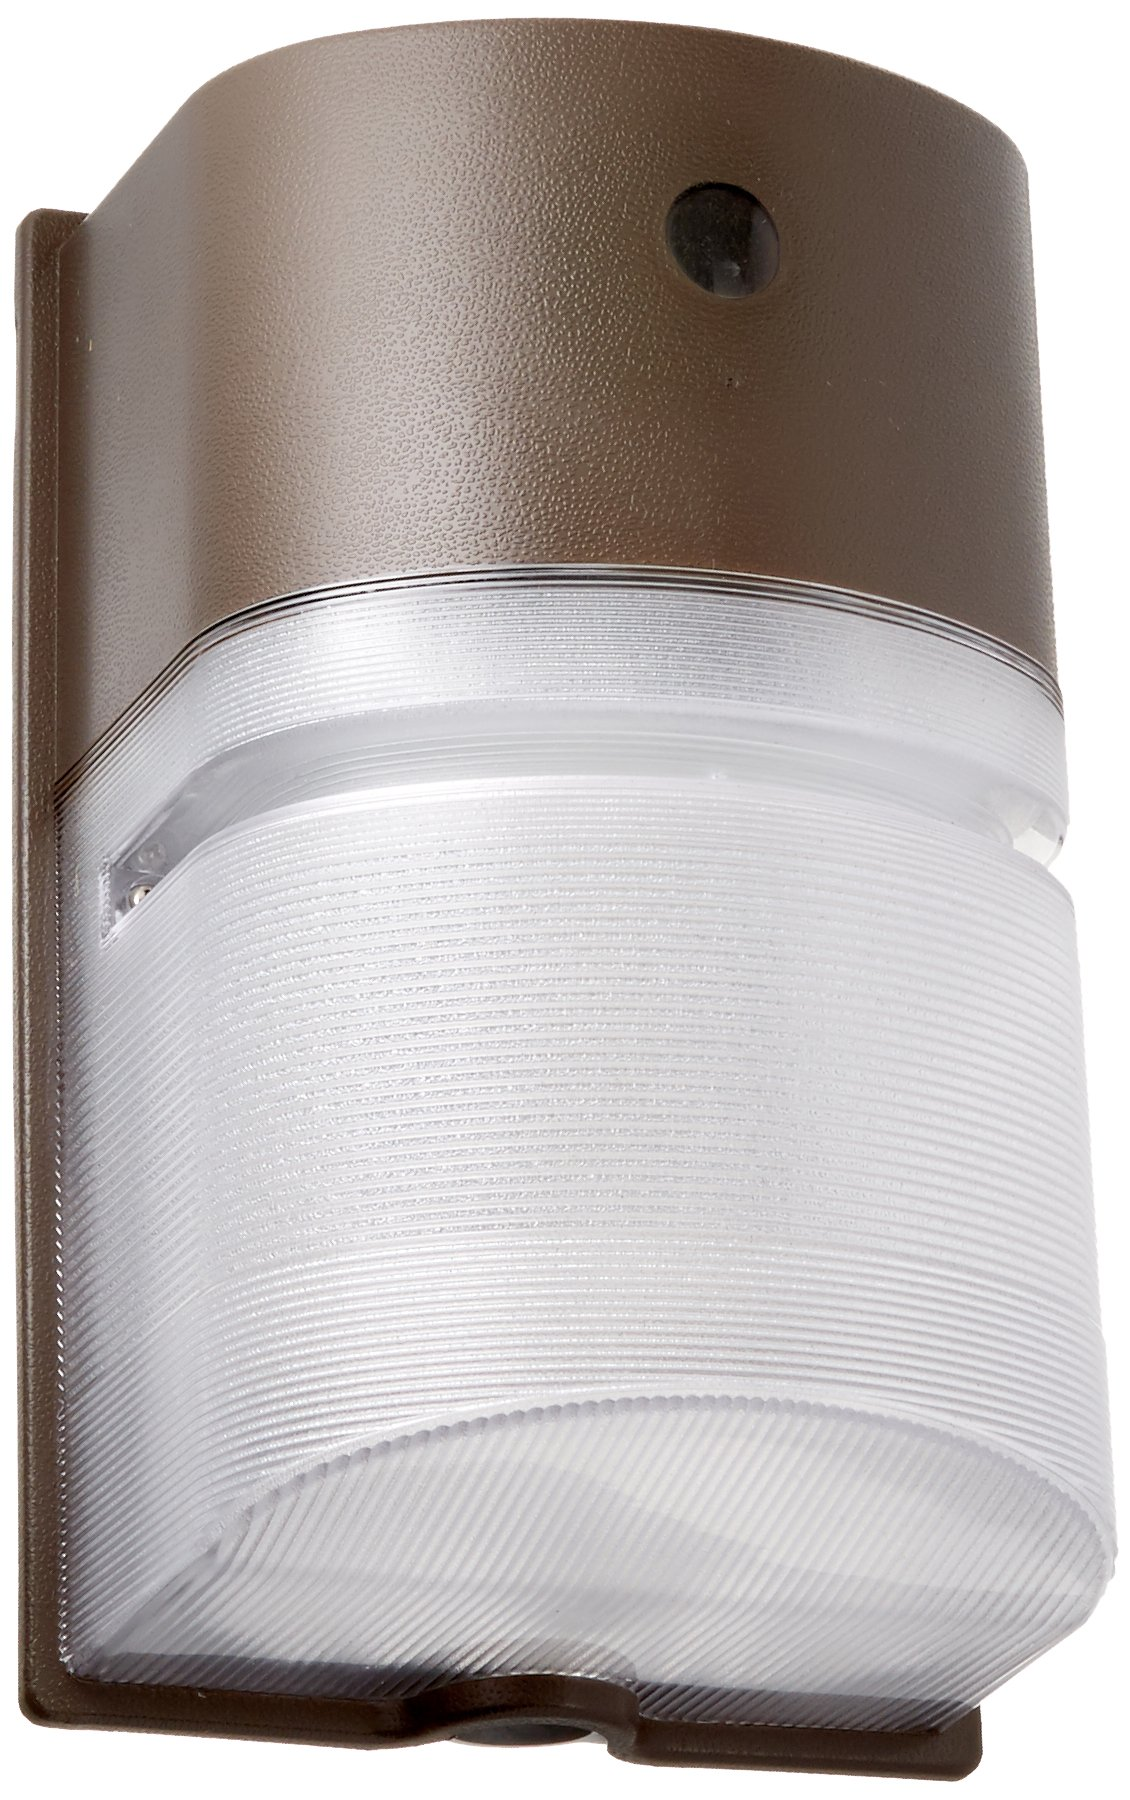 Hubbell Outdoor NRG250B Decorative Compact Wallpack with 50W PSMH Lamp, 120V